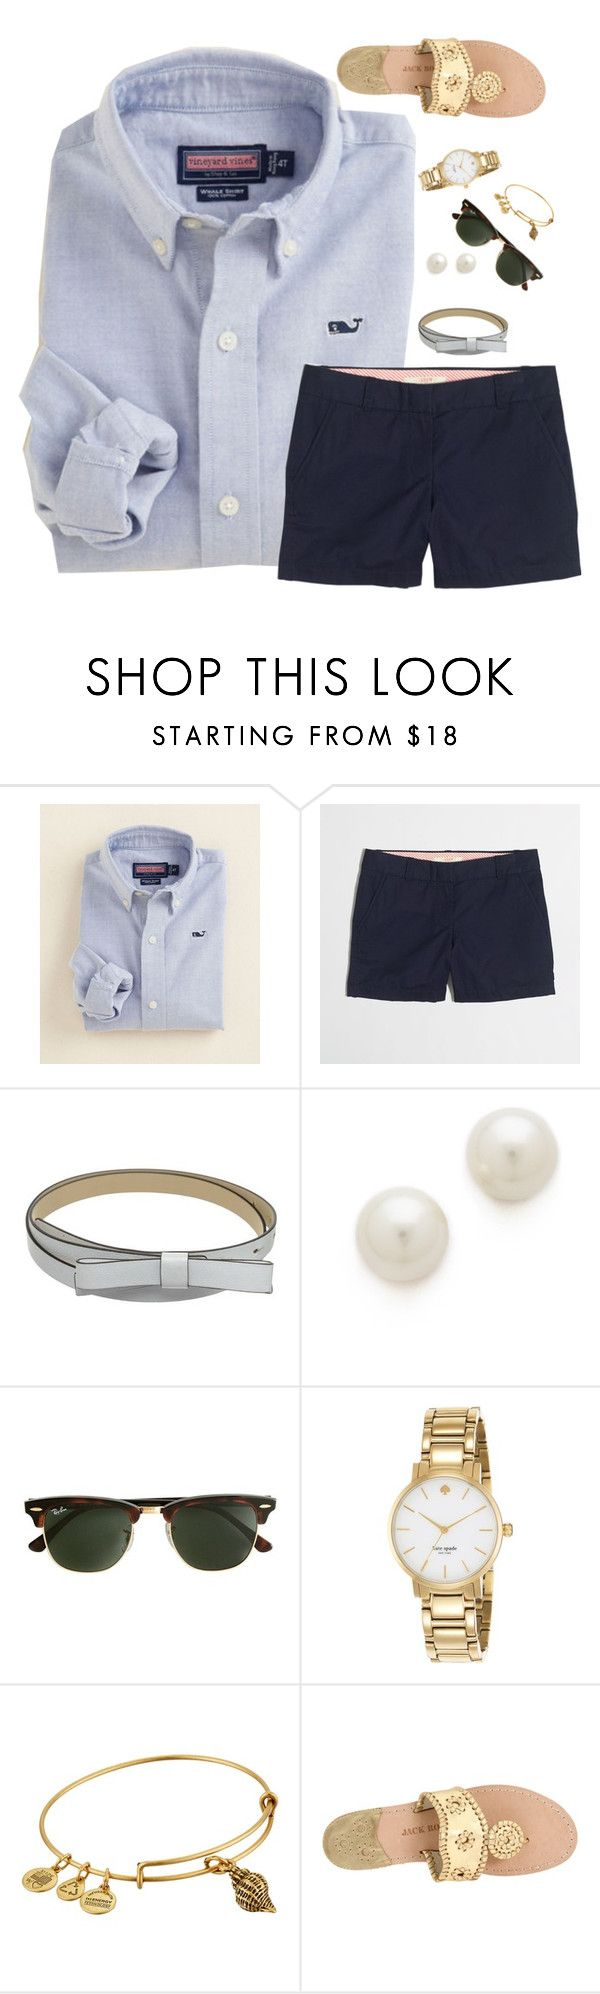 """""""new england vibes"""" by preppy-ginger-girl ❤ liked on Polyvore featuring Vineyard Vines, J.Crew, Kate Spade, Kenneth Jay Lane, Alex and Ani and Jack Rogers"""